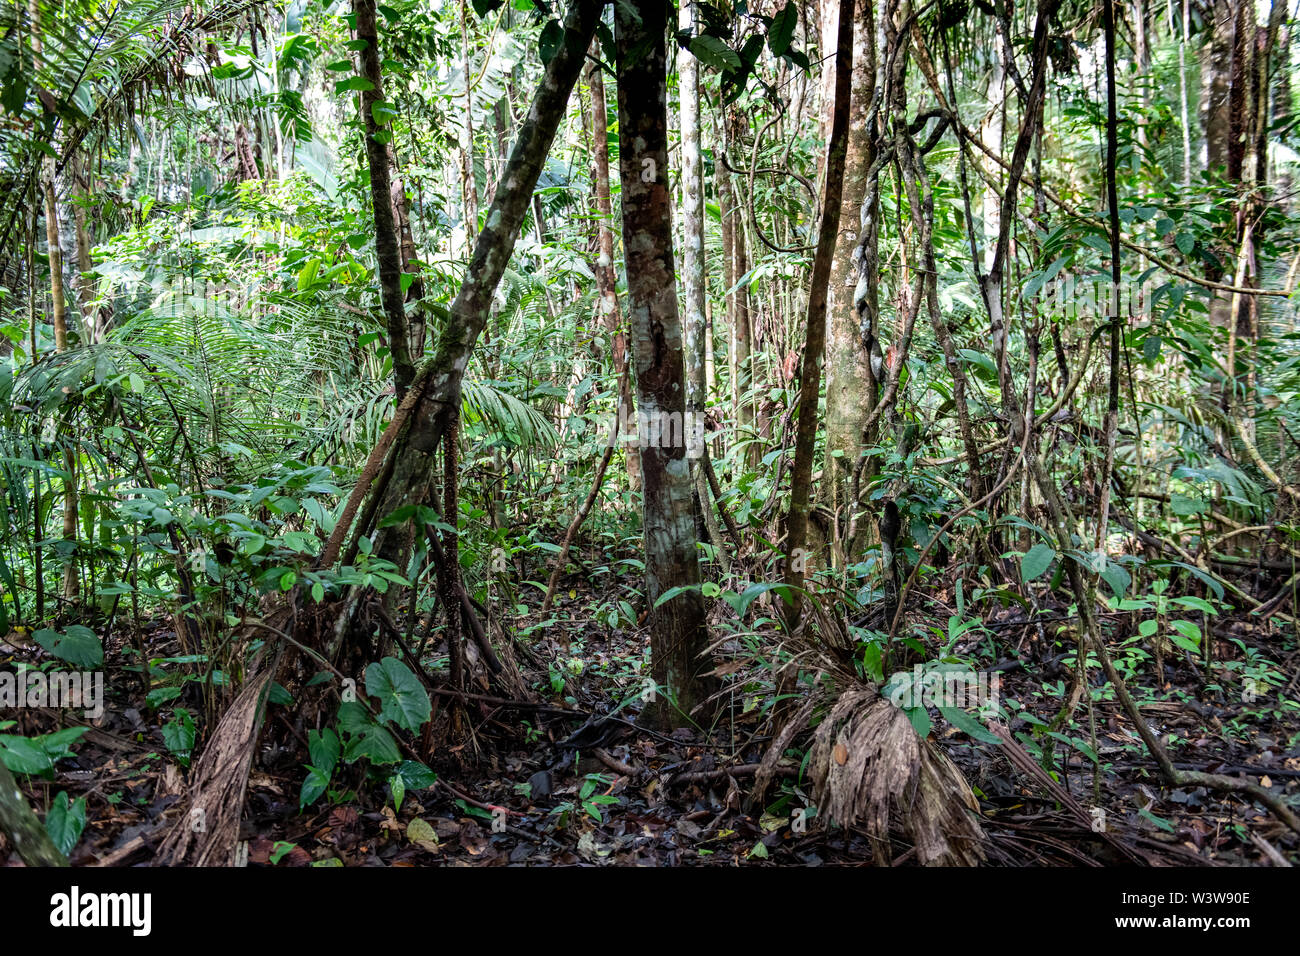 150 free images of amazon forest. Equatorial Forest High Resolution Stock Photography And Images Alamy